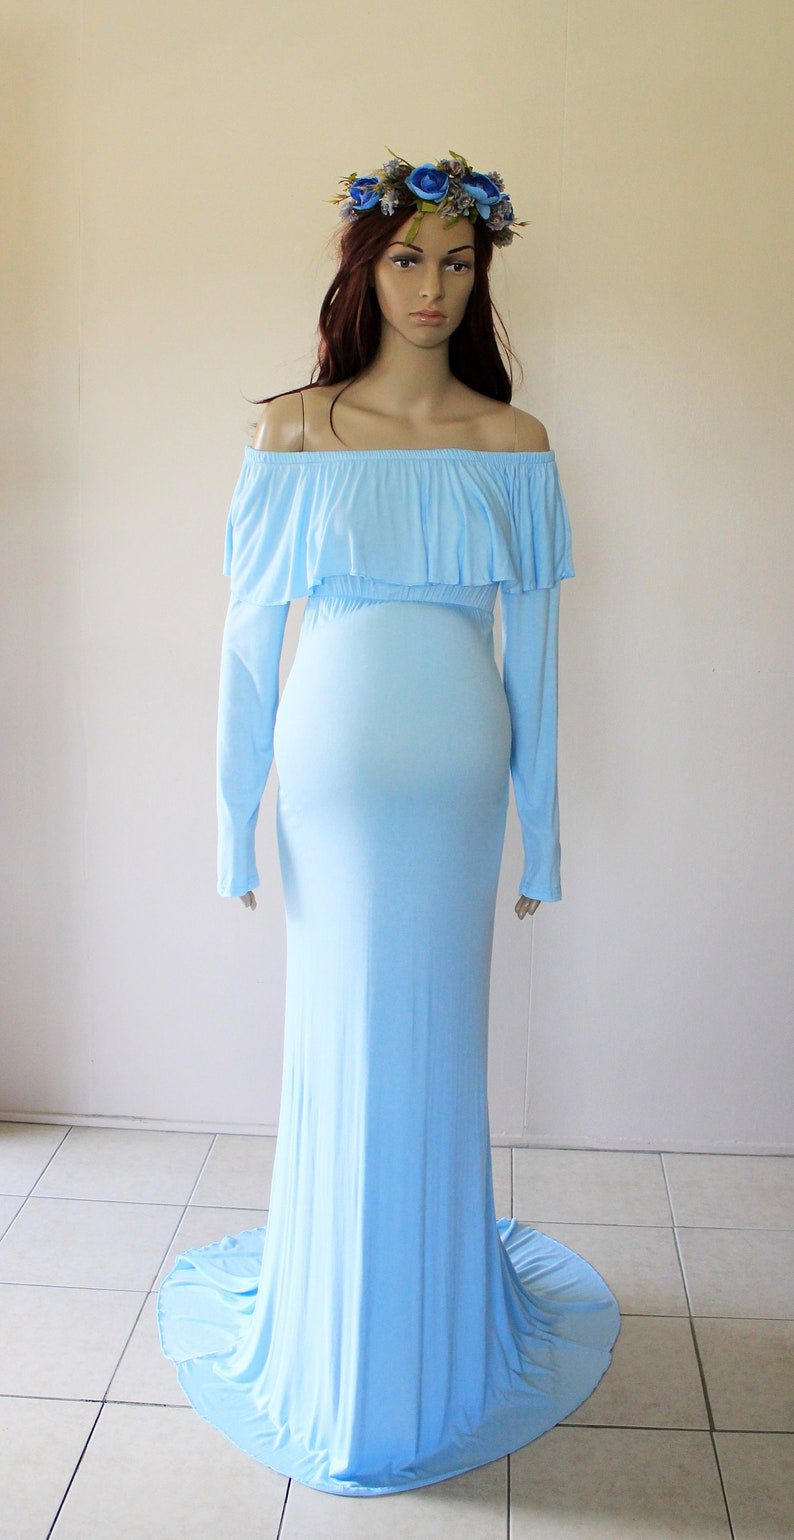 607eef79afb35 Baby Blue Off Shoulder Maternity Dress Gown Drape Photo | Etsy